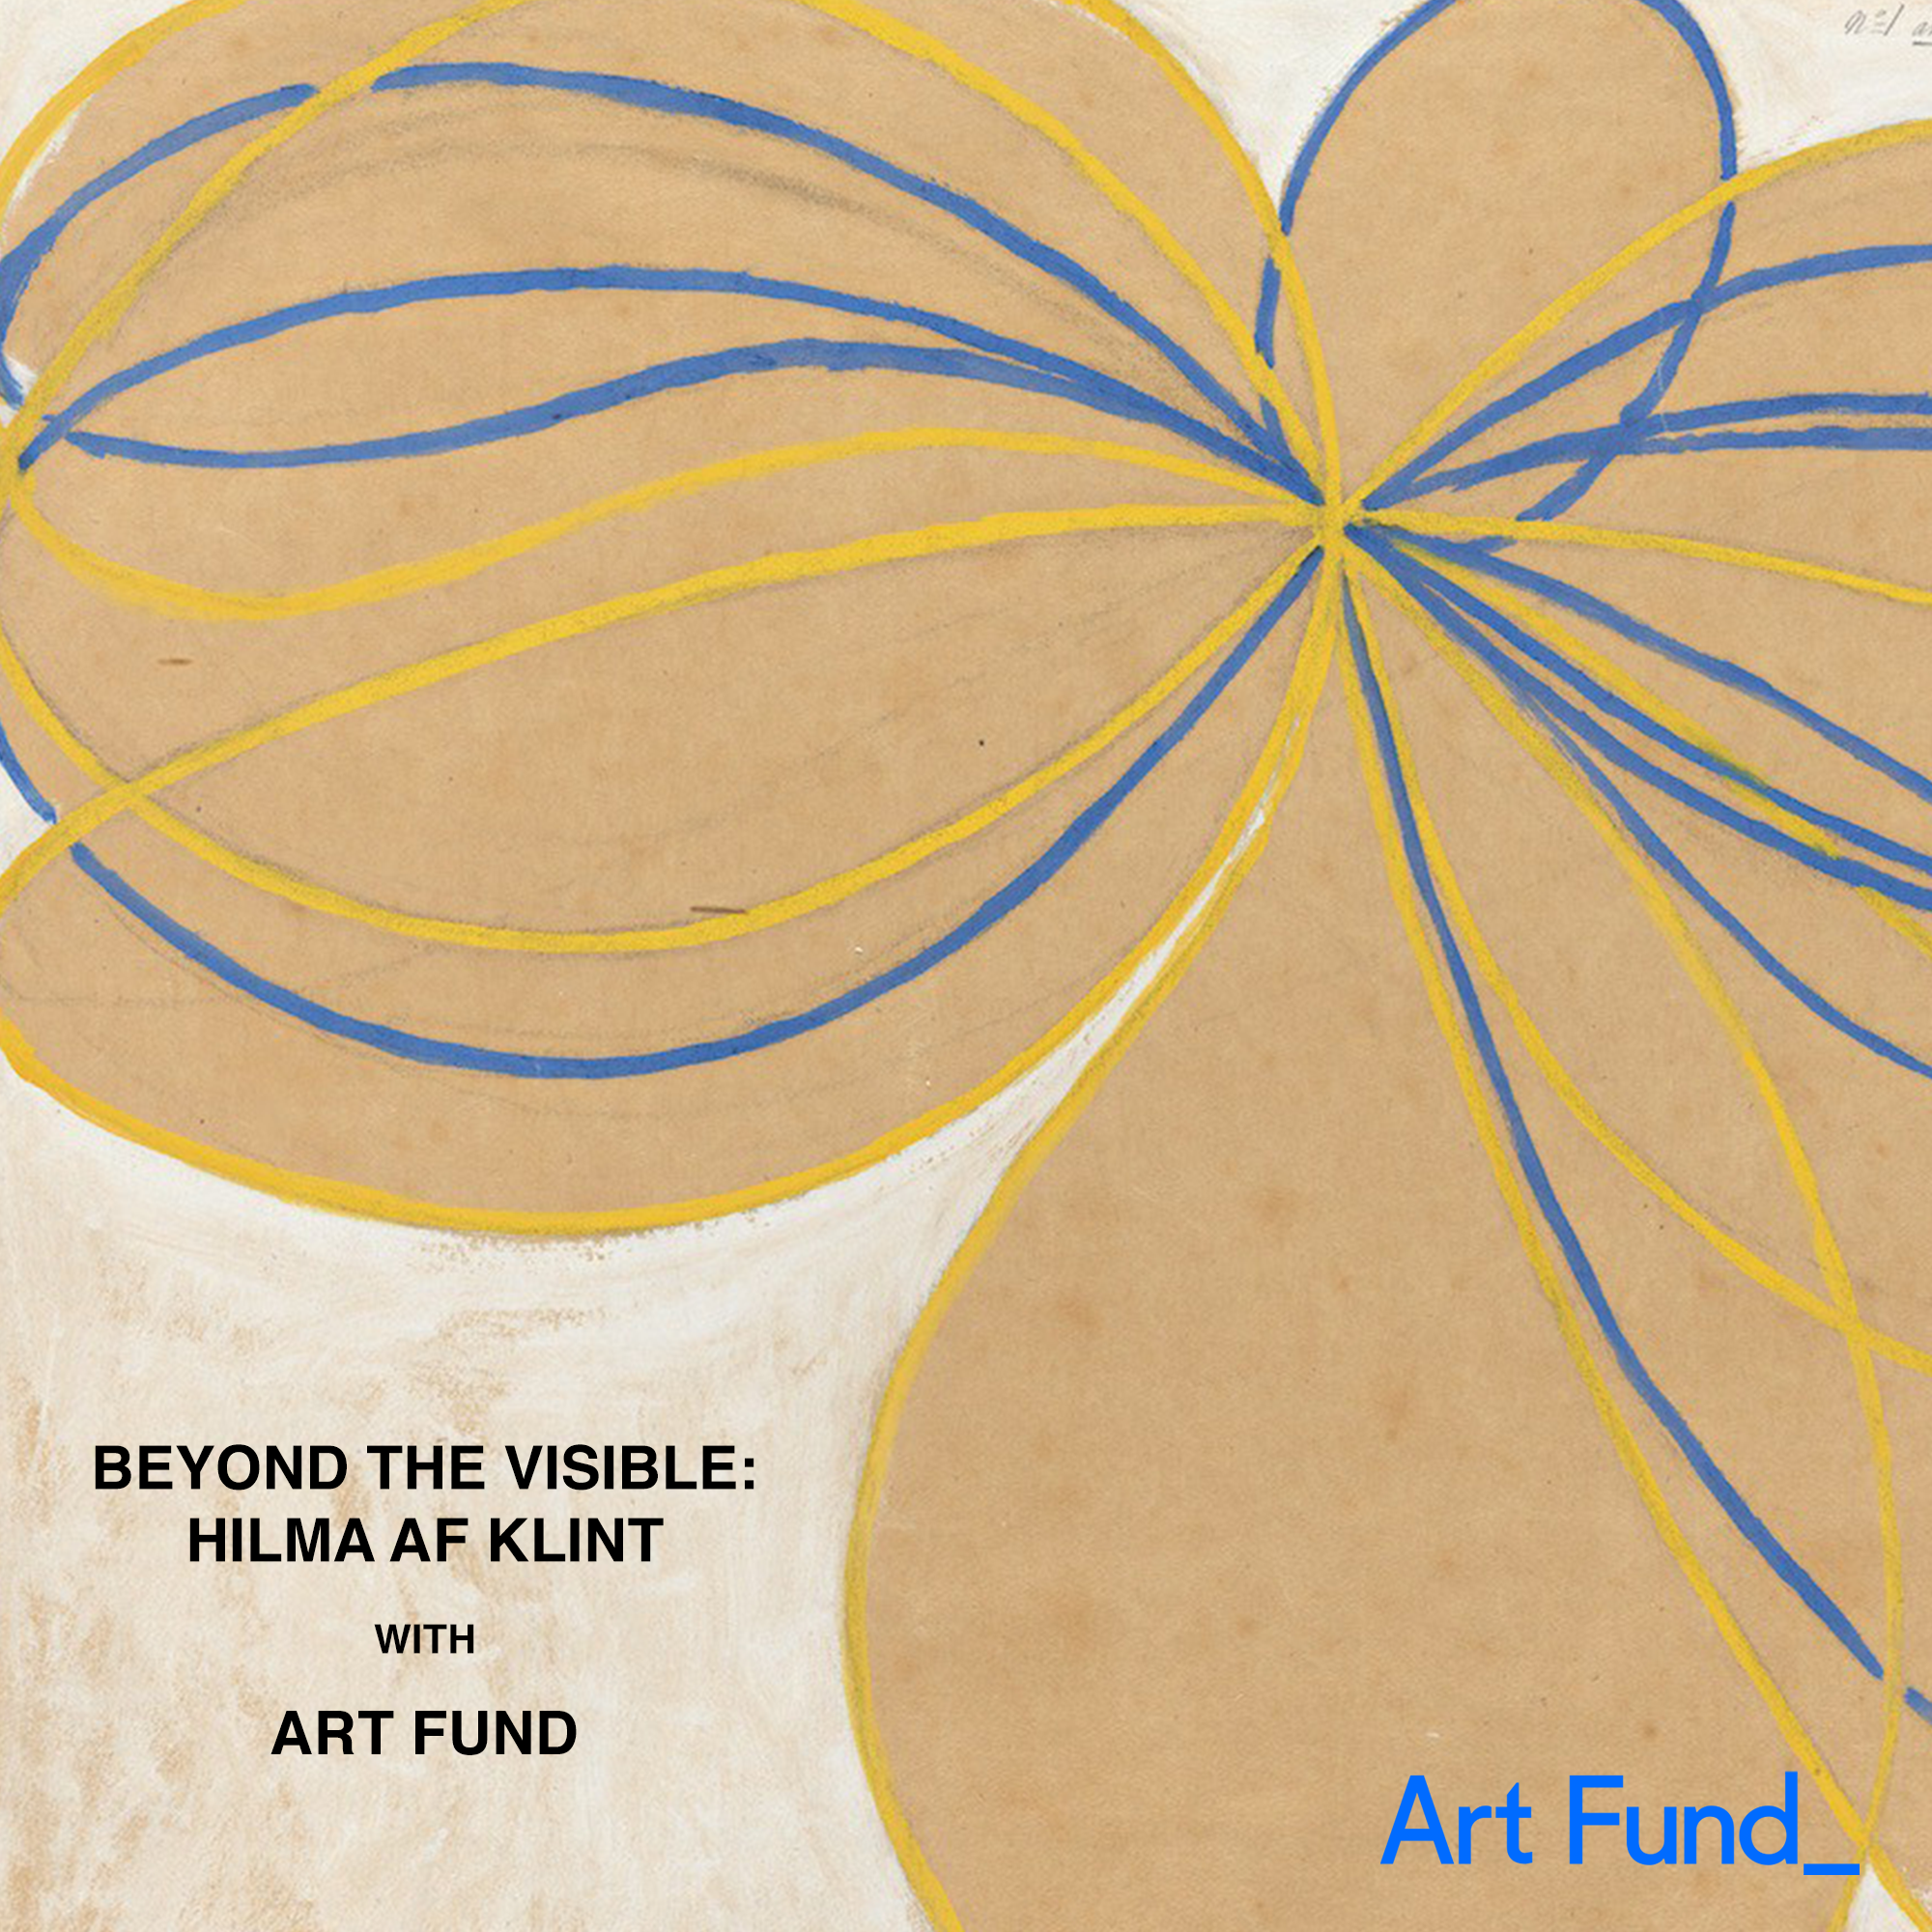 Beyond the Visible: Hilma af Klint with Art Fund